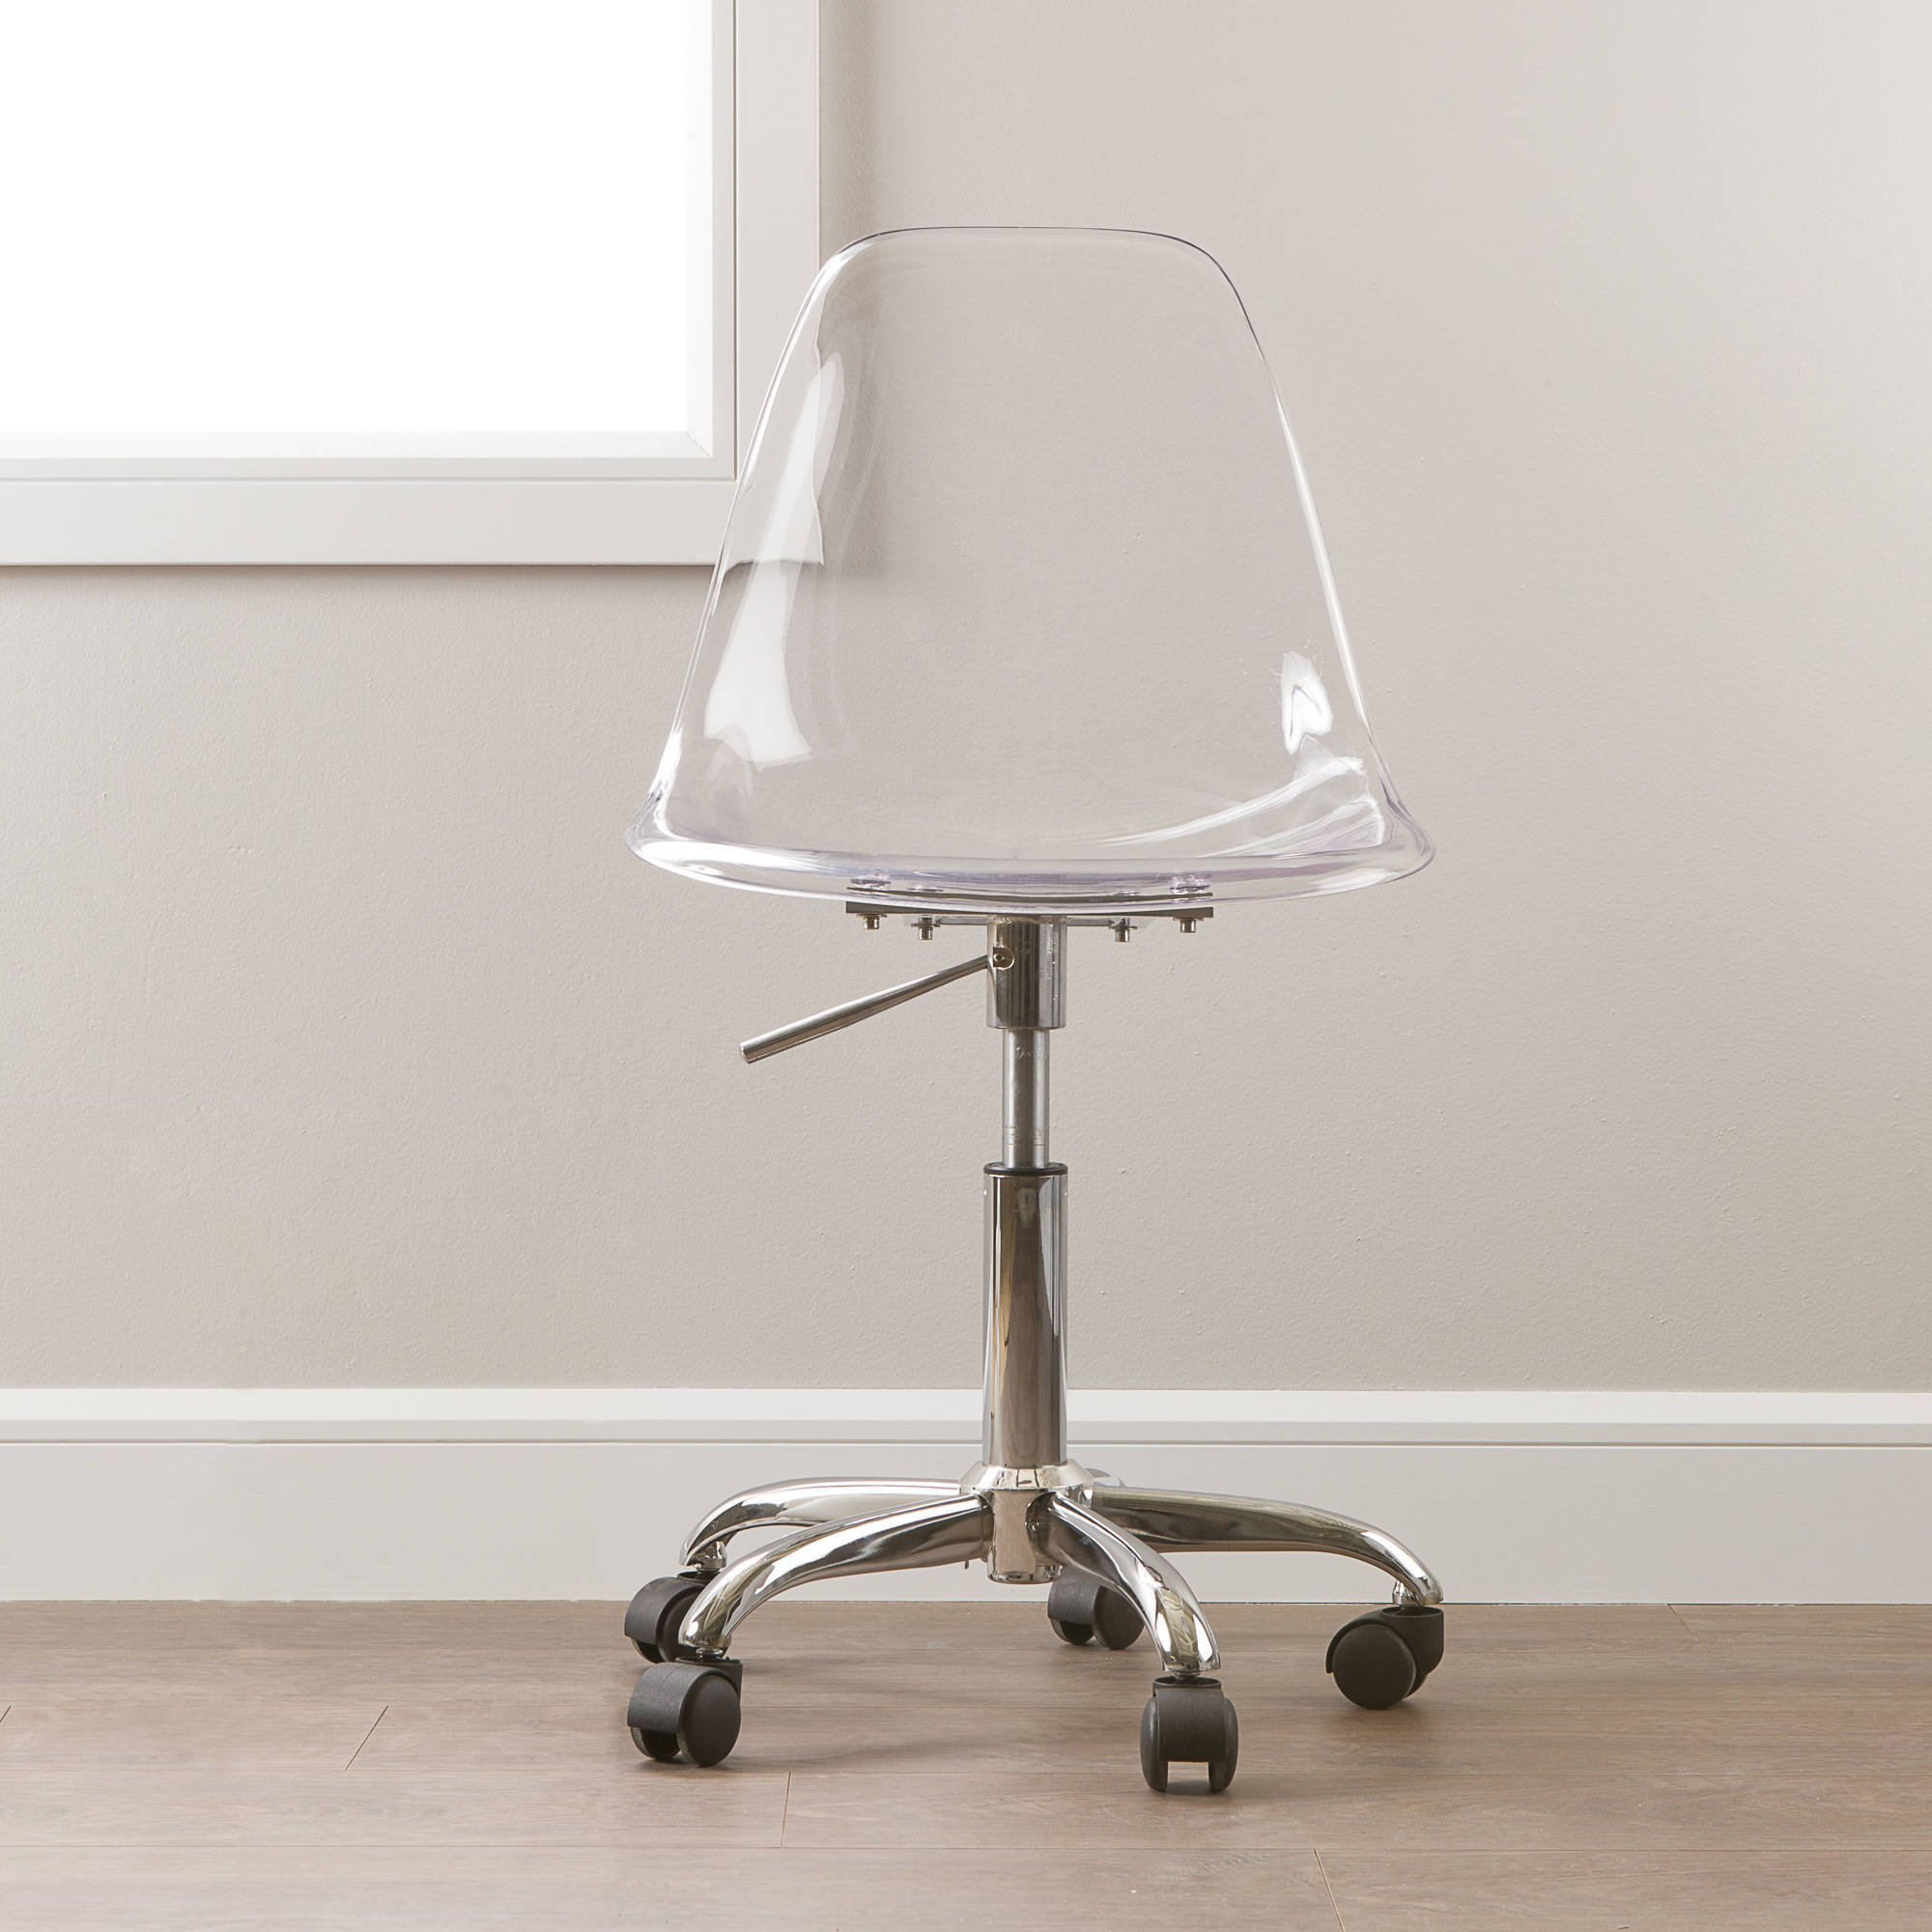 clear office chairs. South Shore Annexe Clear Office Chair With Wheels, Multiple Colors Chairs M